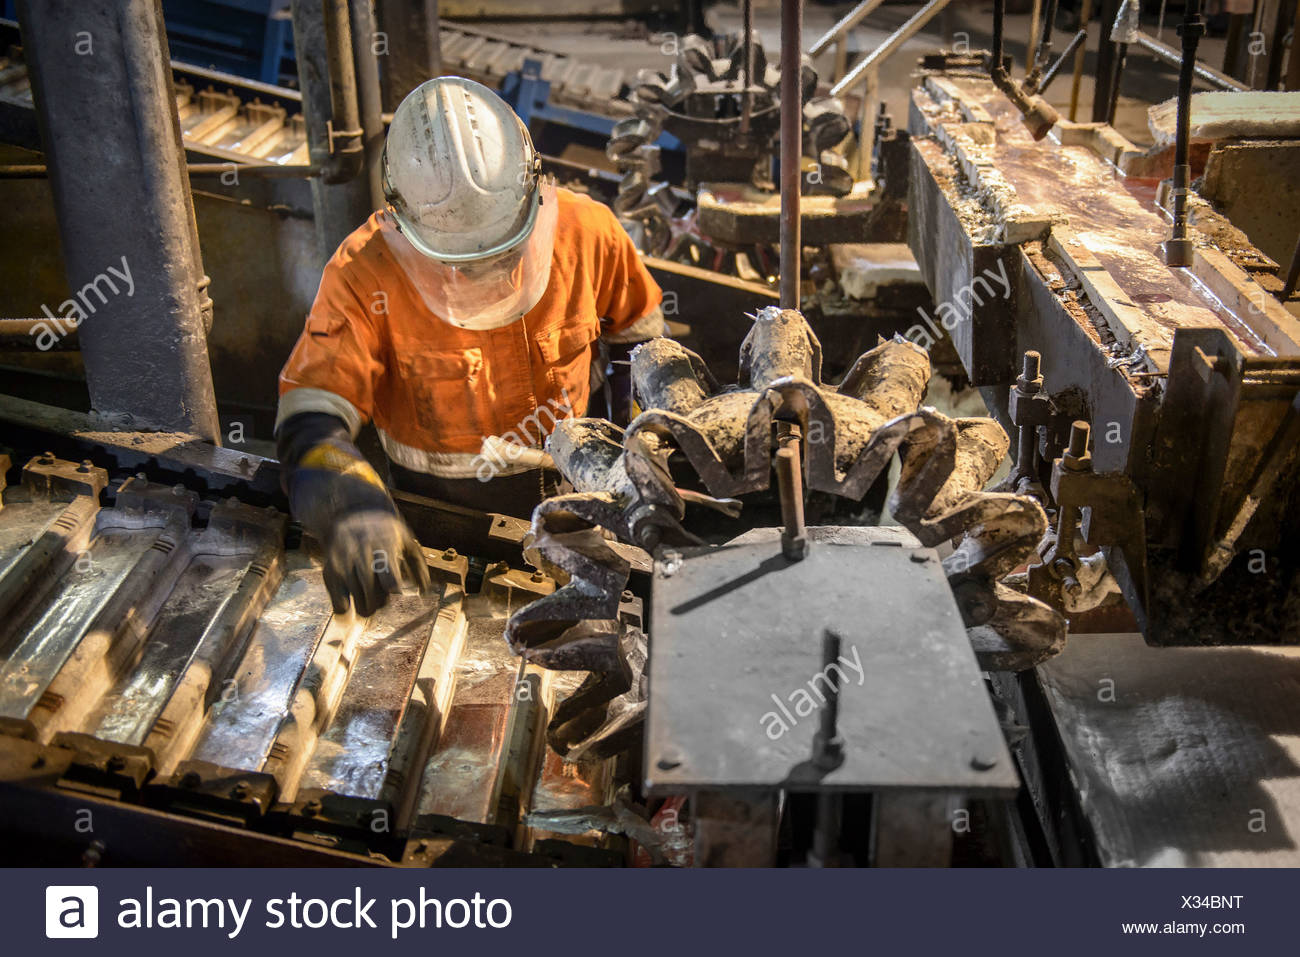 Worker testing metal ingots at aluminum recycling plant - Stock Image